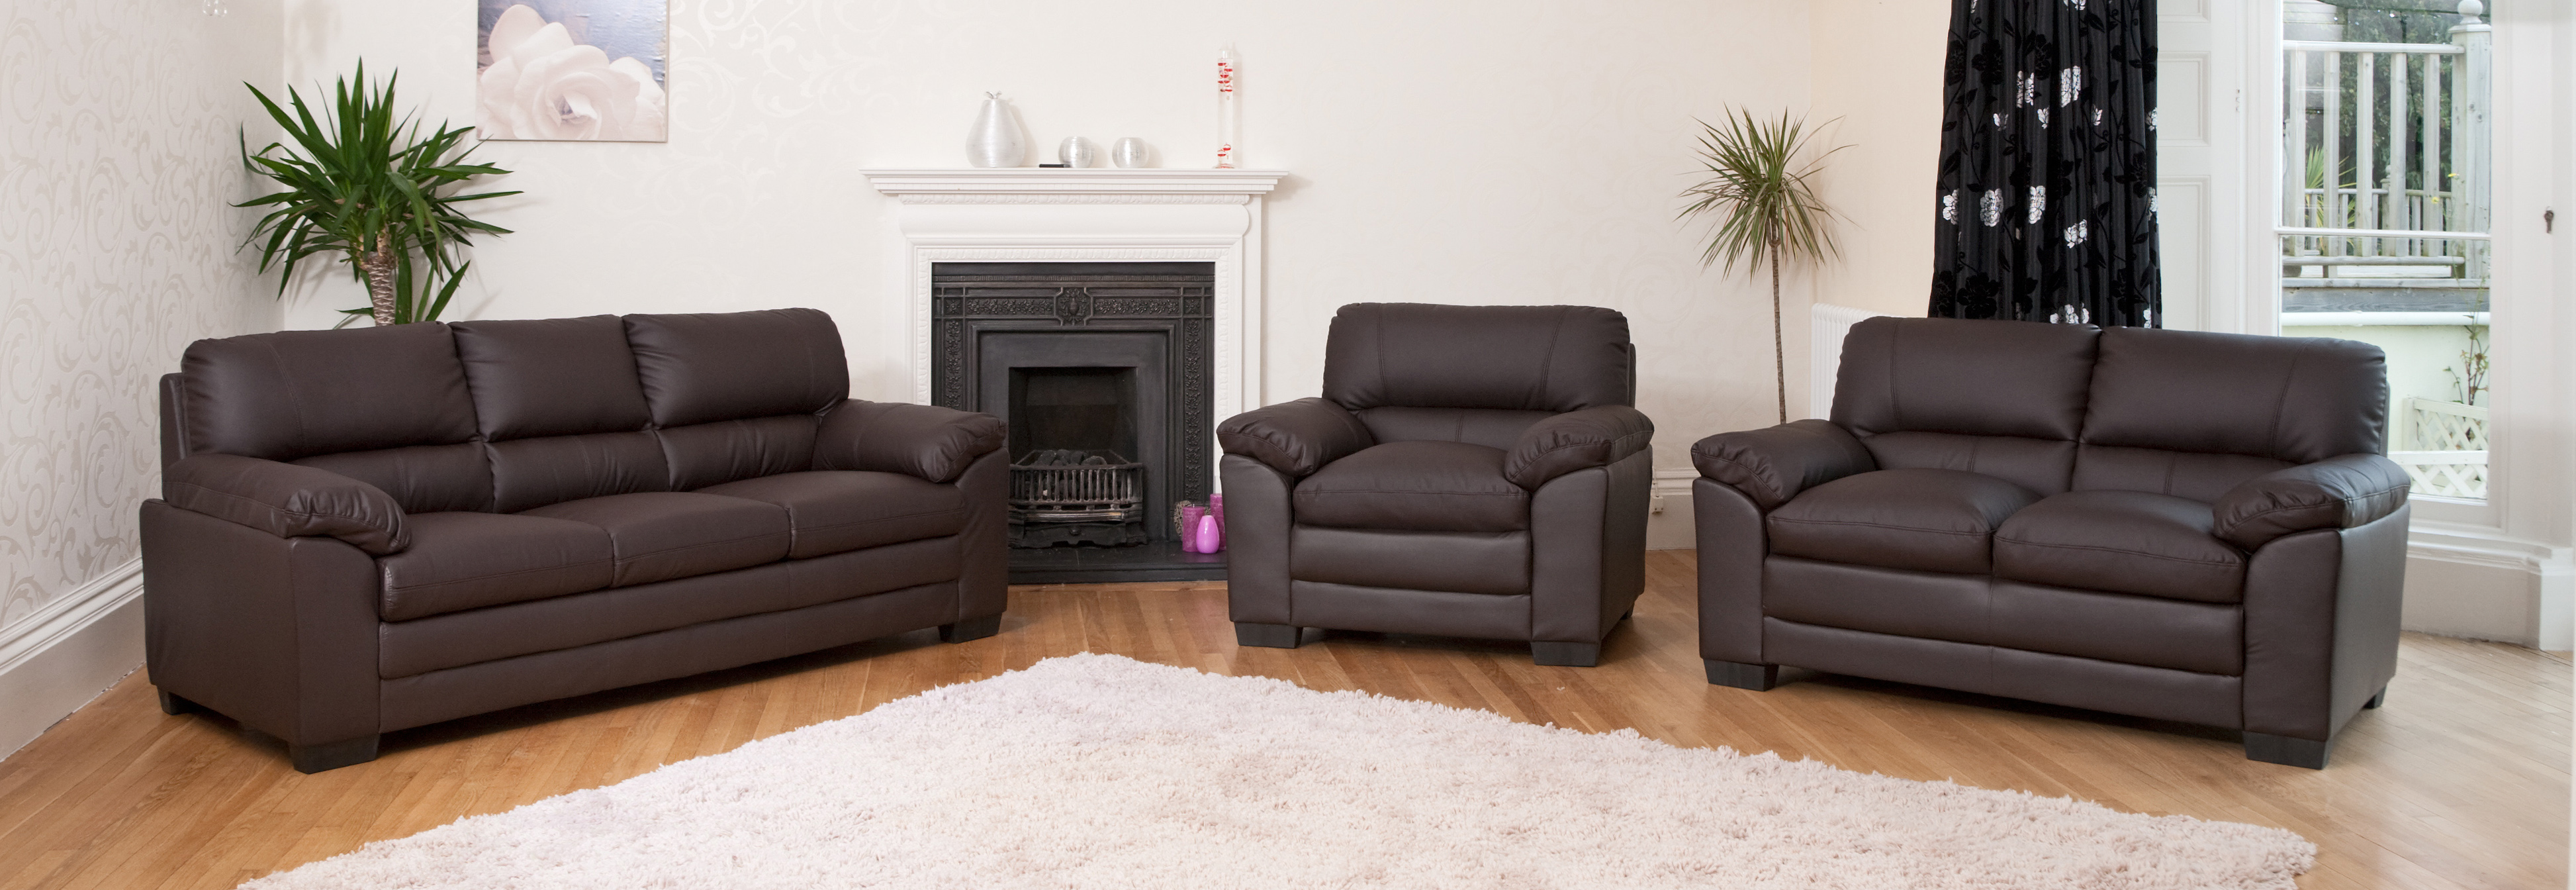 Sotherby Suite brown